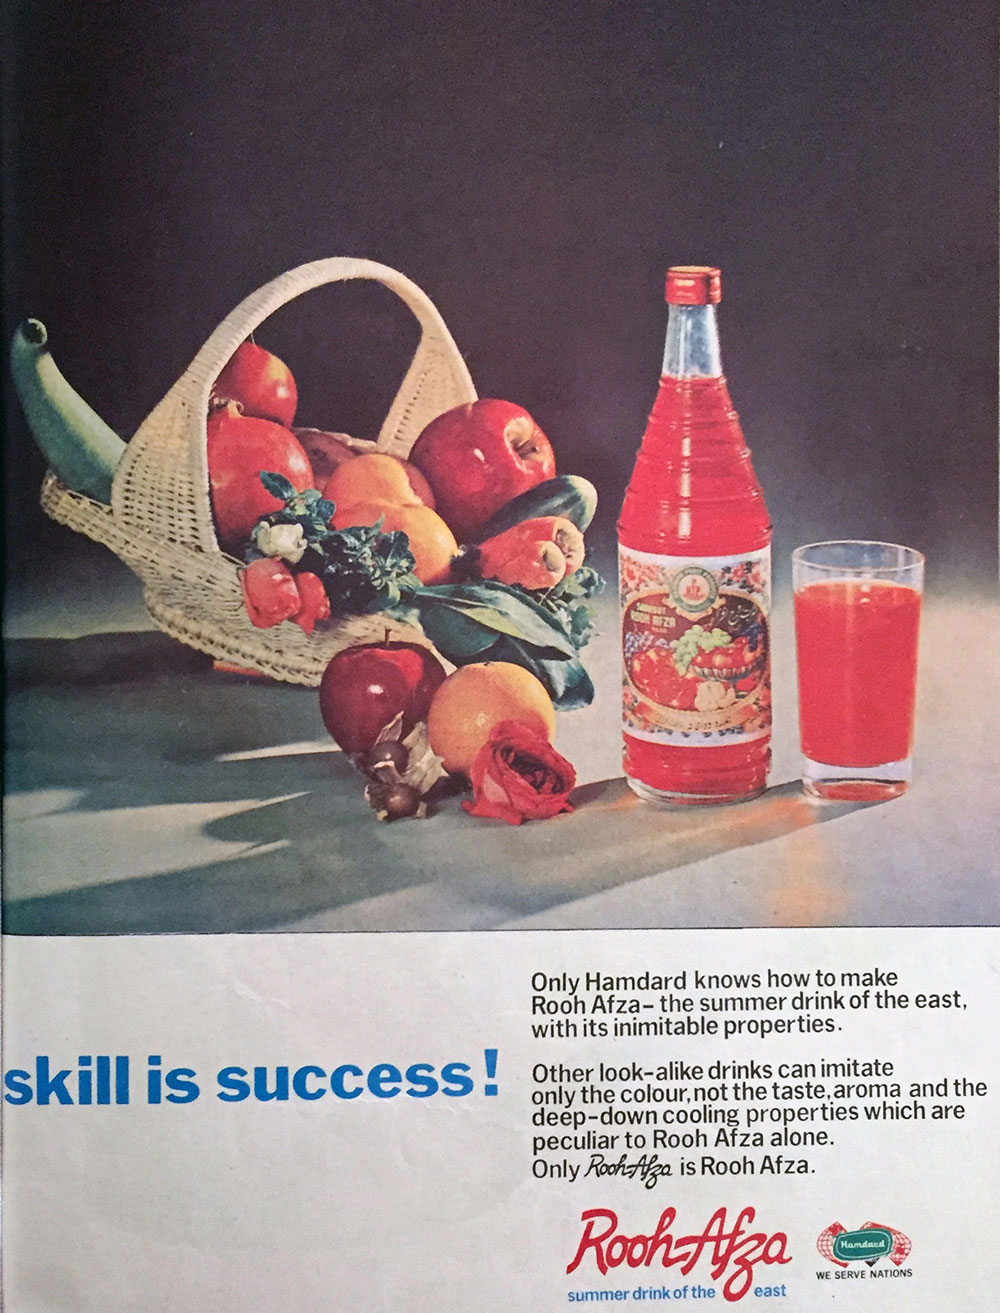 A Rooh Afza print ad published in 1989.